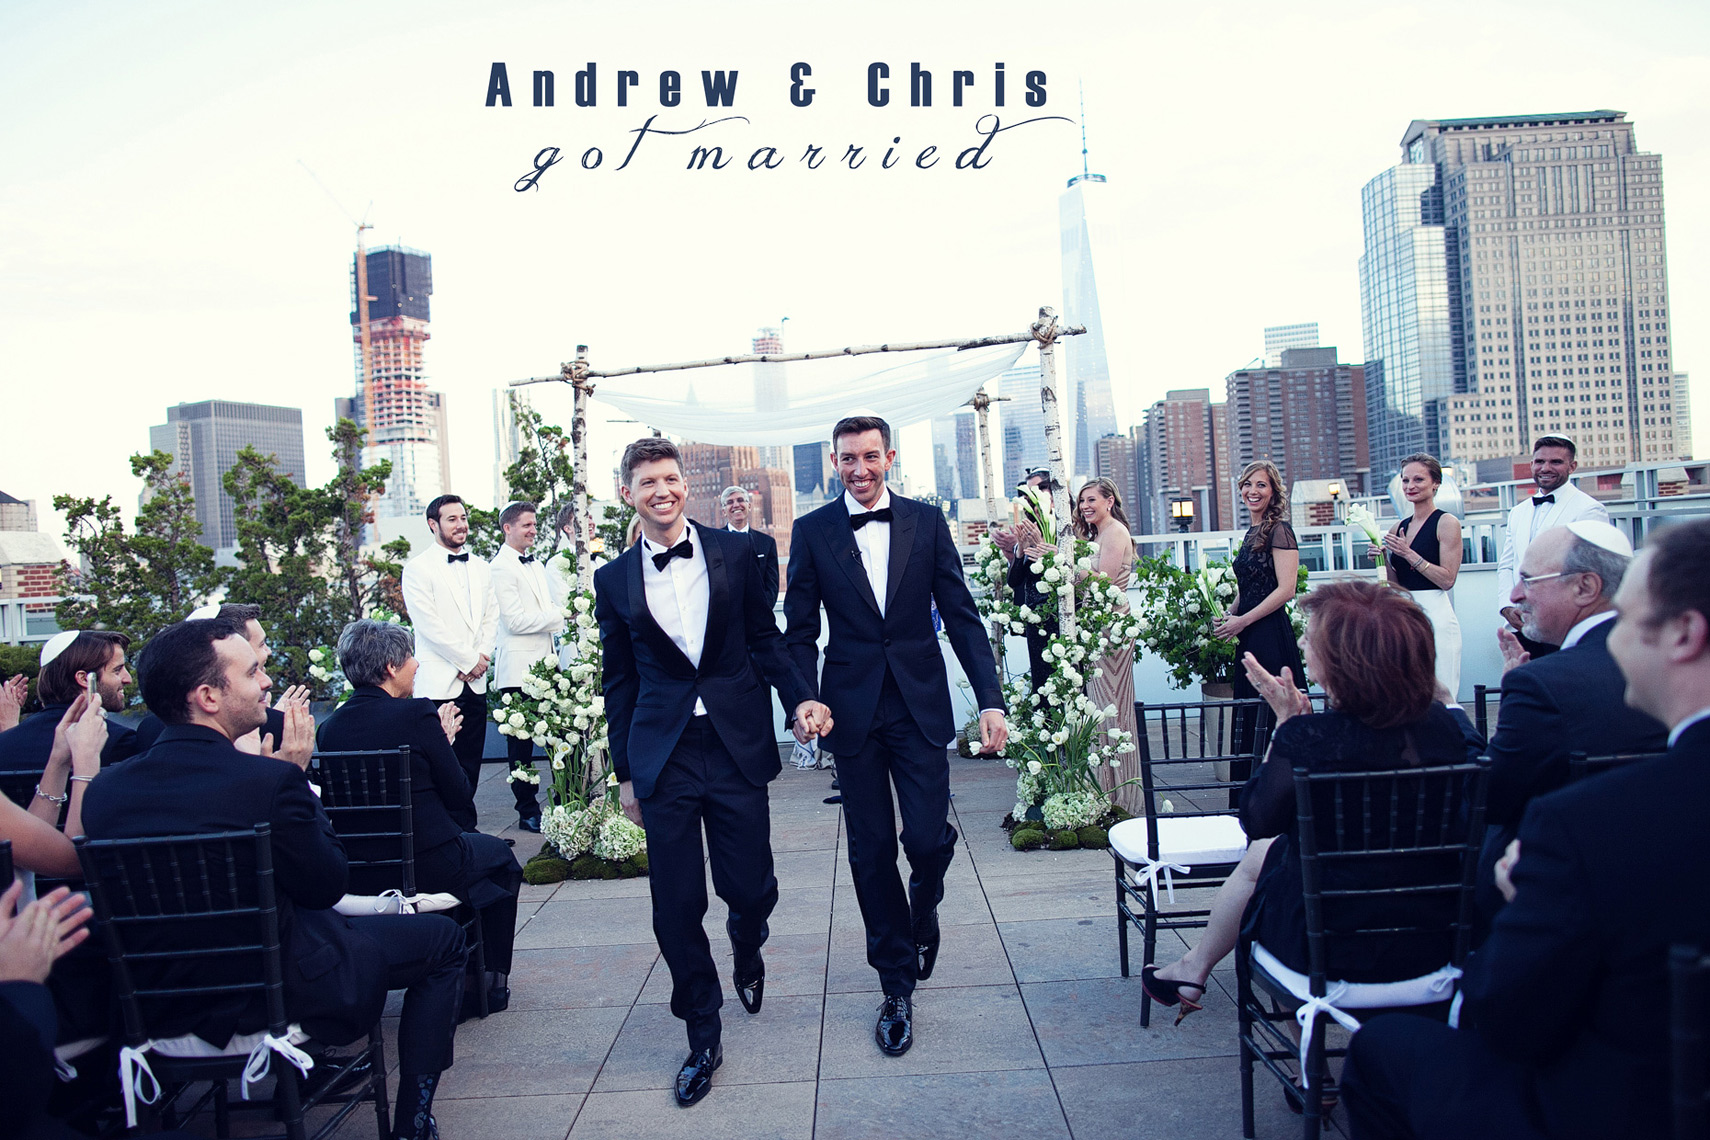 AndrewChris_tribeca_preview_001